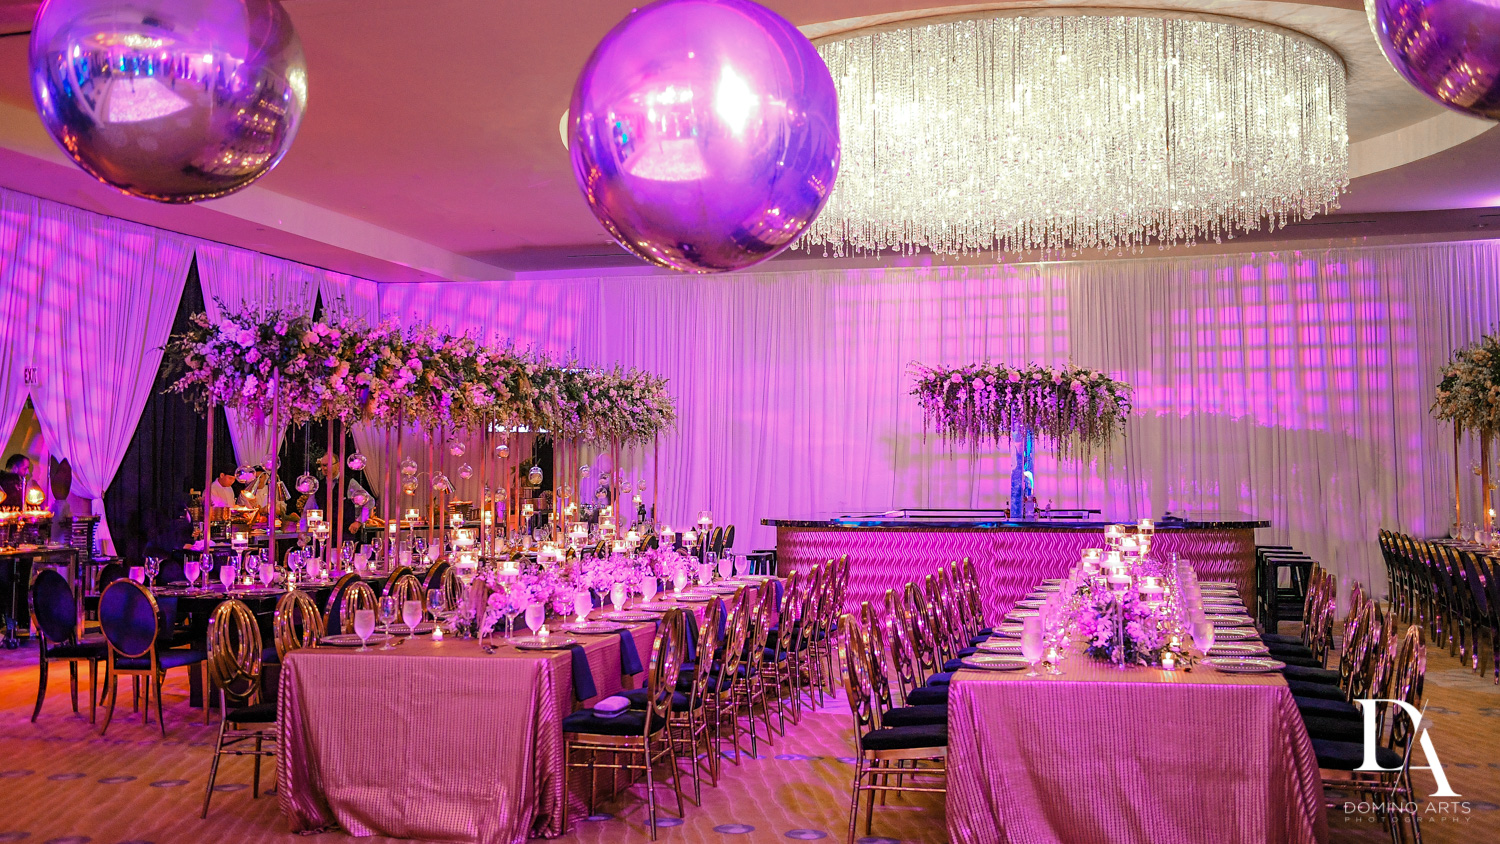 luxury decor at Masquerade Ball Bat Mitzvah at Ritz Carlton Fort Lauderdale by Domino Arts Photography